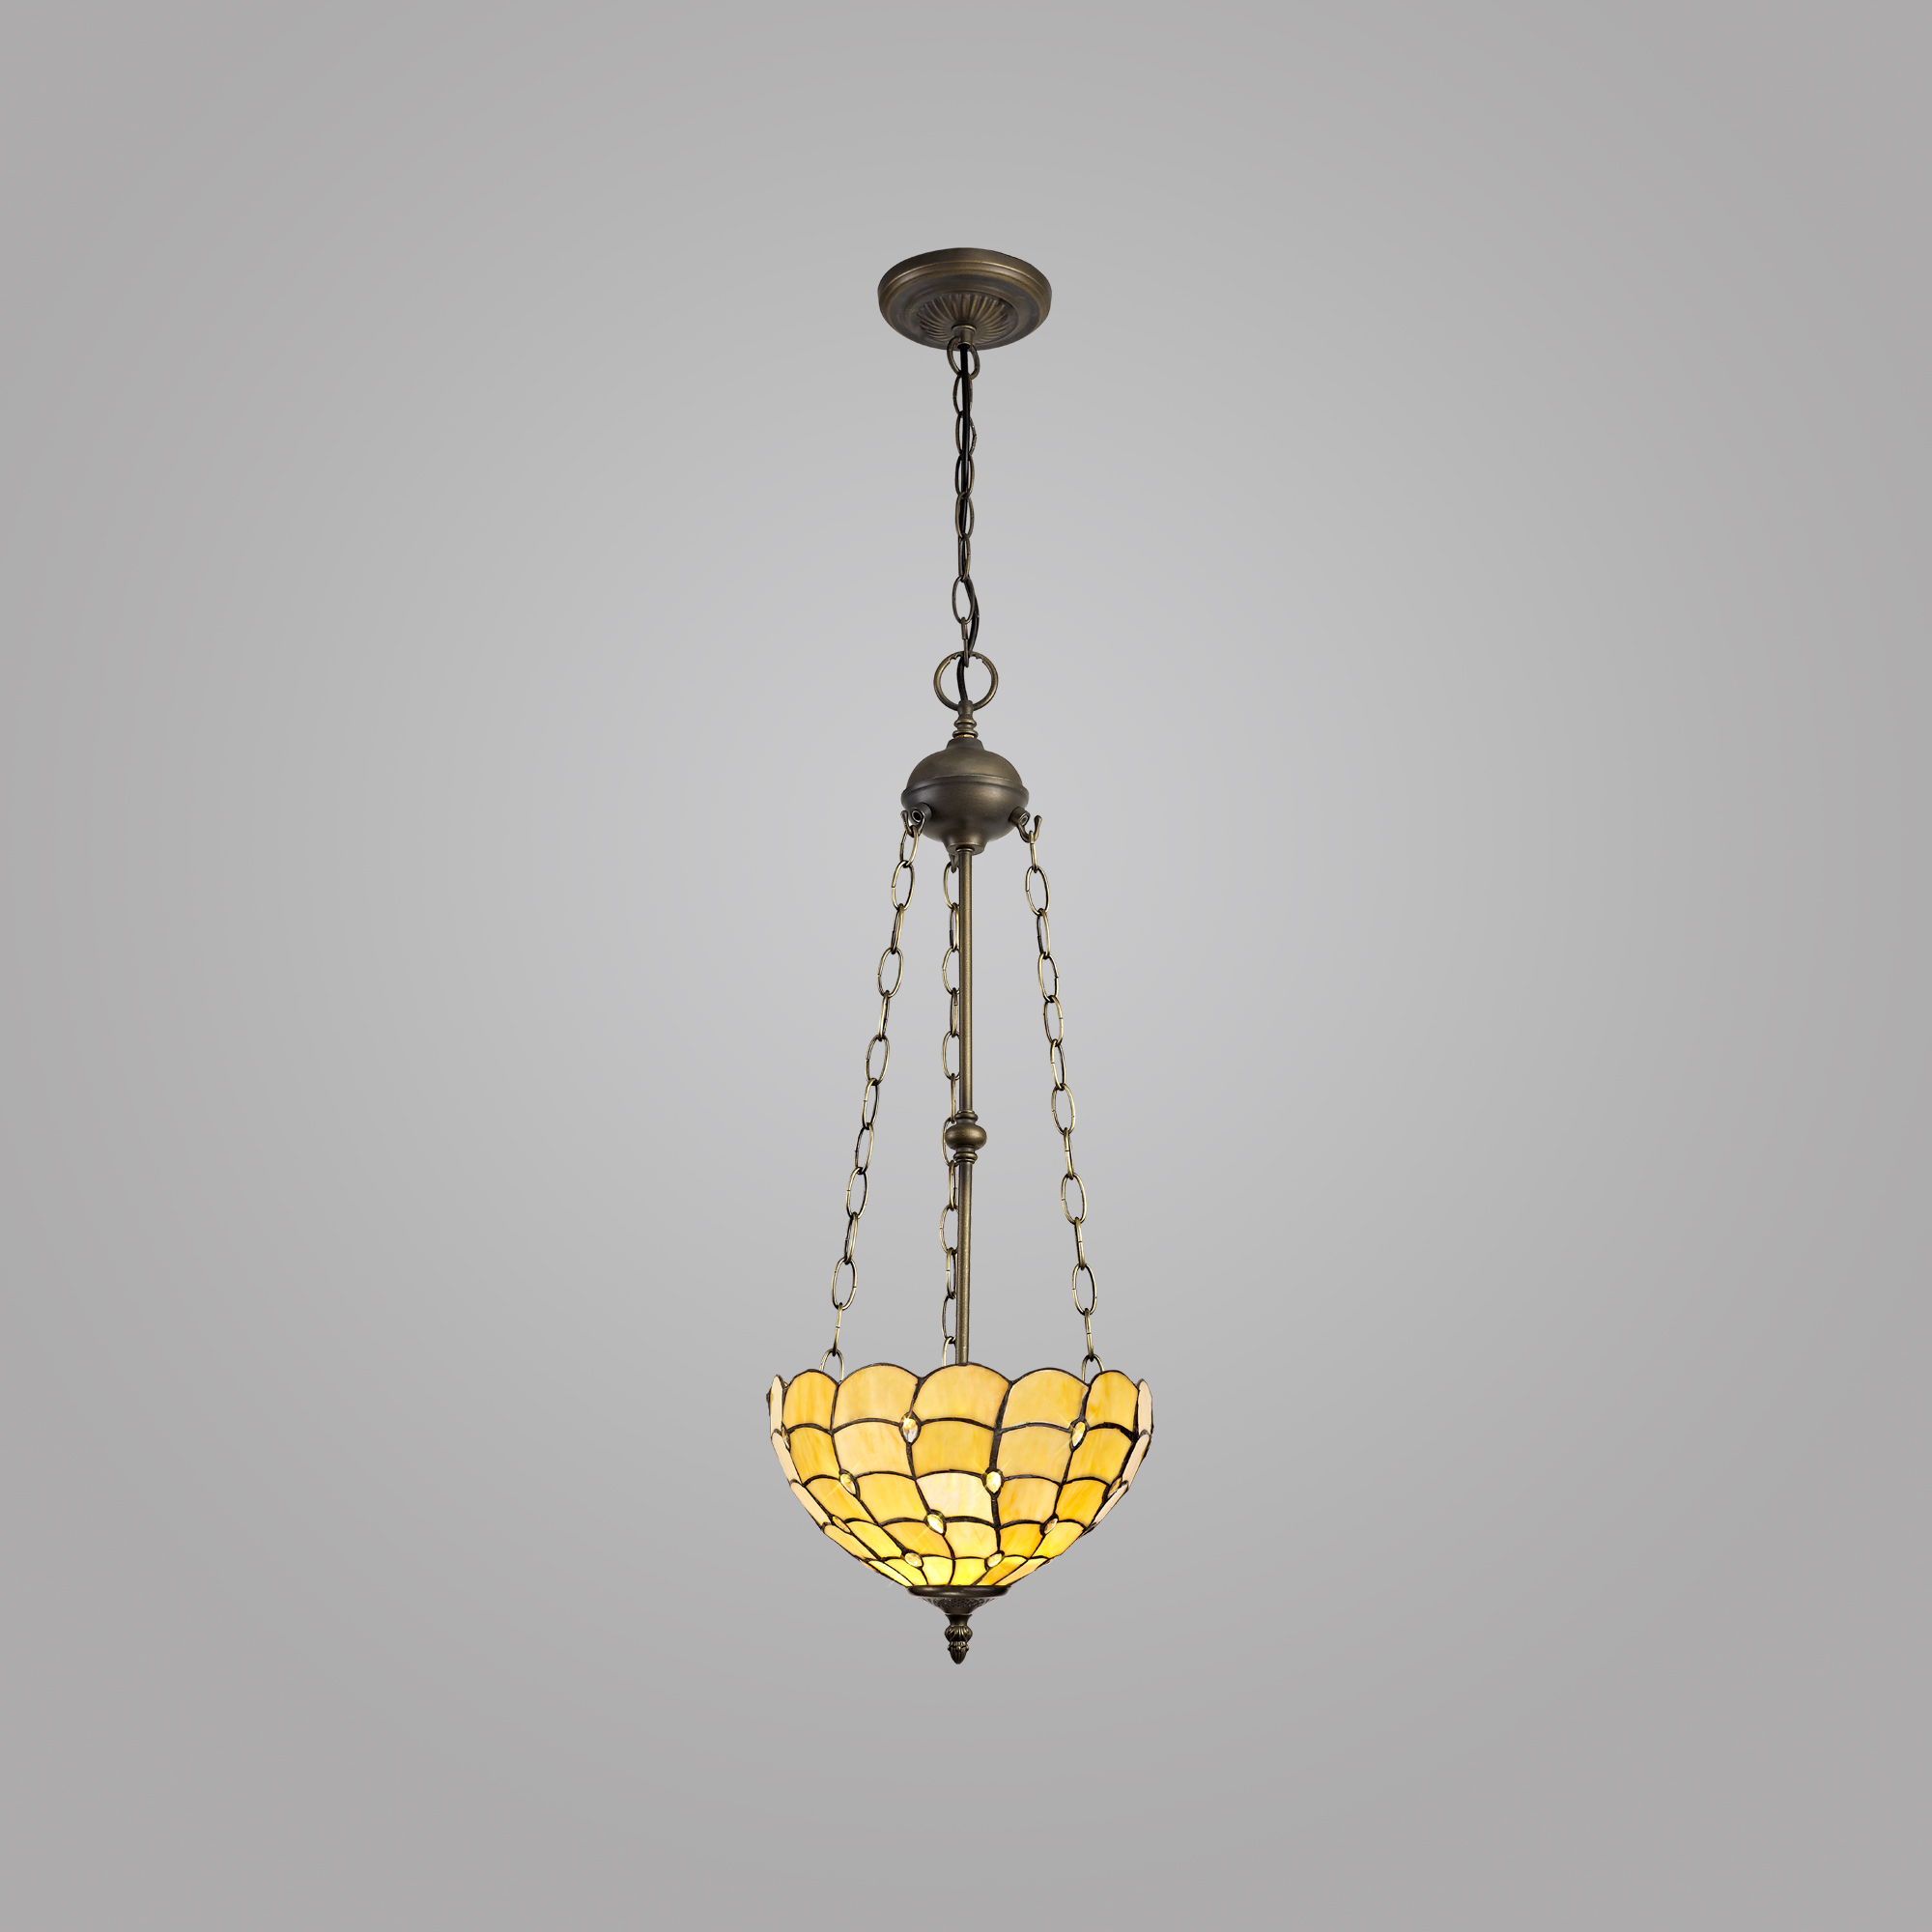 3 Light Uplighter Pendant E27 With 30cm Tiffany Shade, Beige/Clear Crystal/Aged Antique Brass